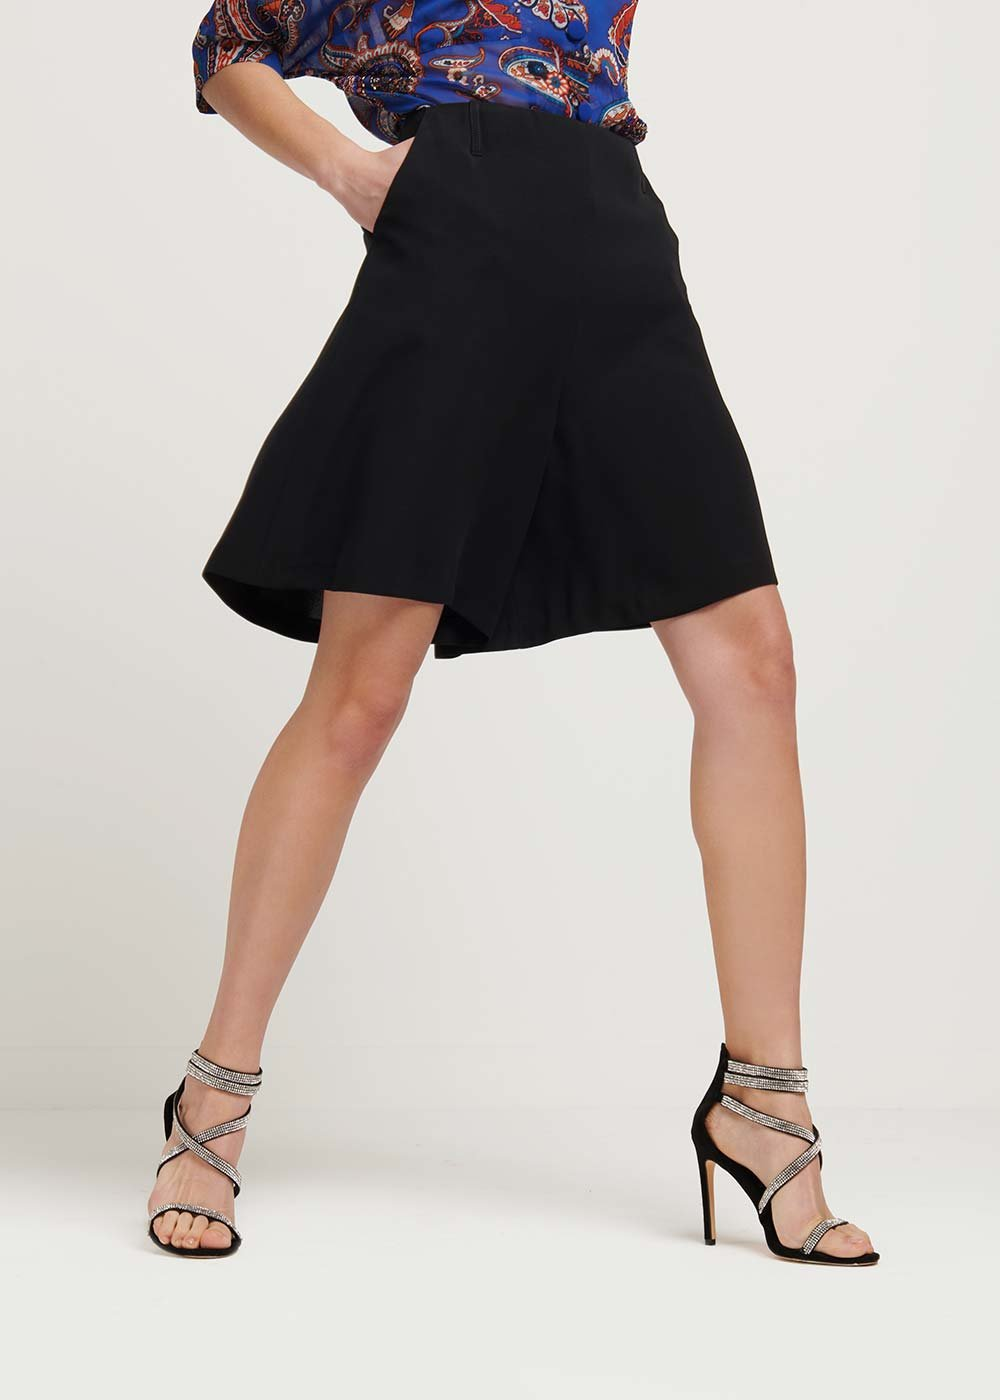 Bred bermuda shorts with invisible zipper - Black - Woman